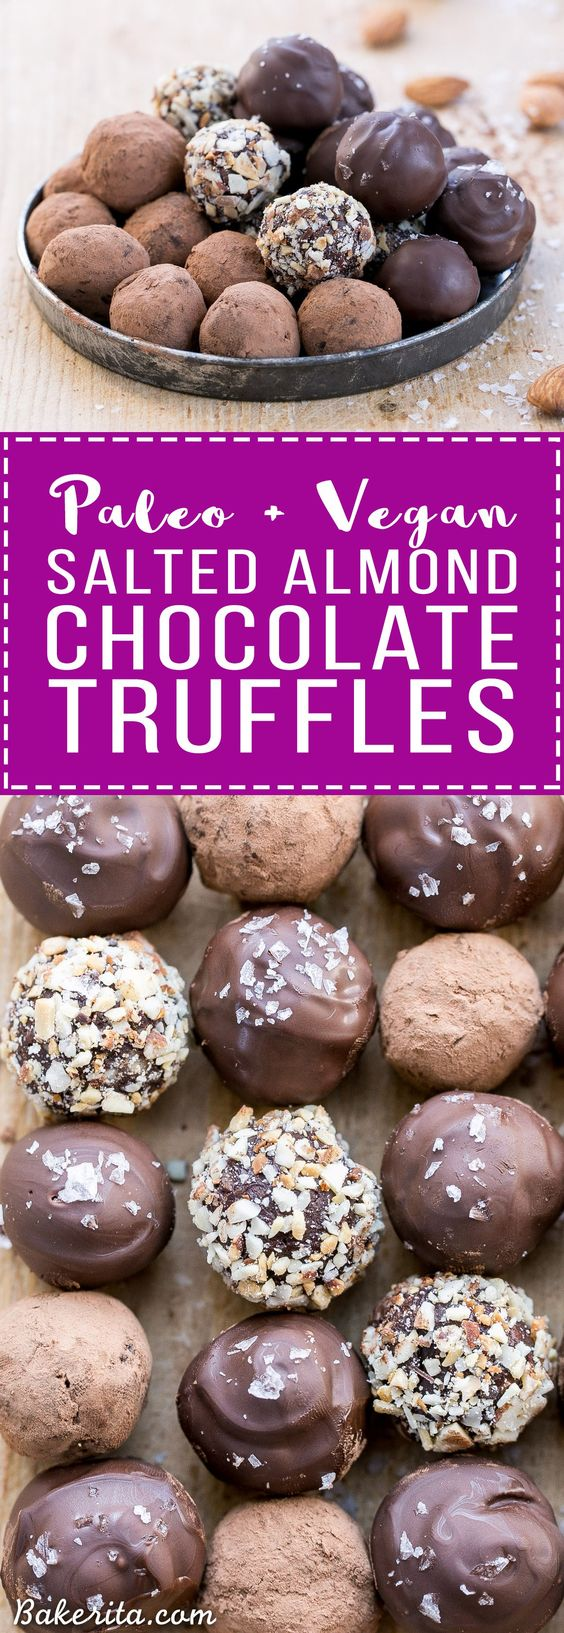 Almond Chocolate Truffles are a chocolate lover's dream! They're easy...